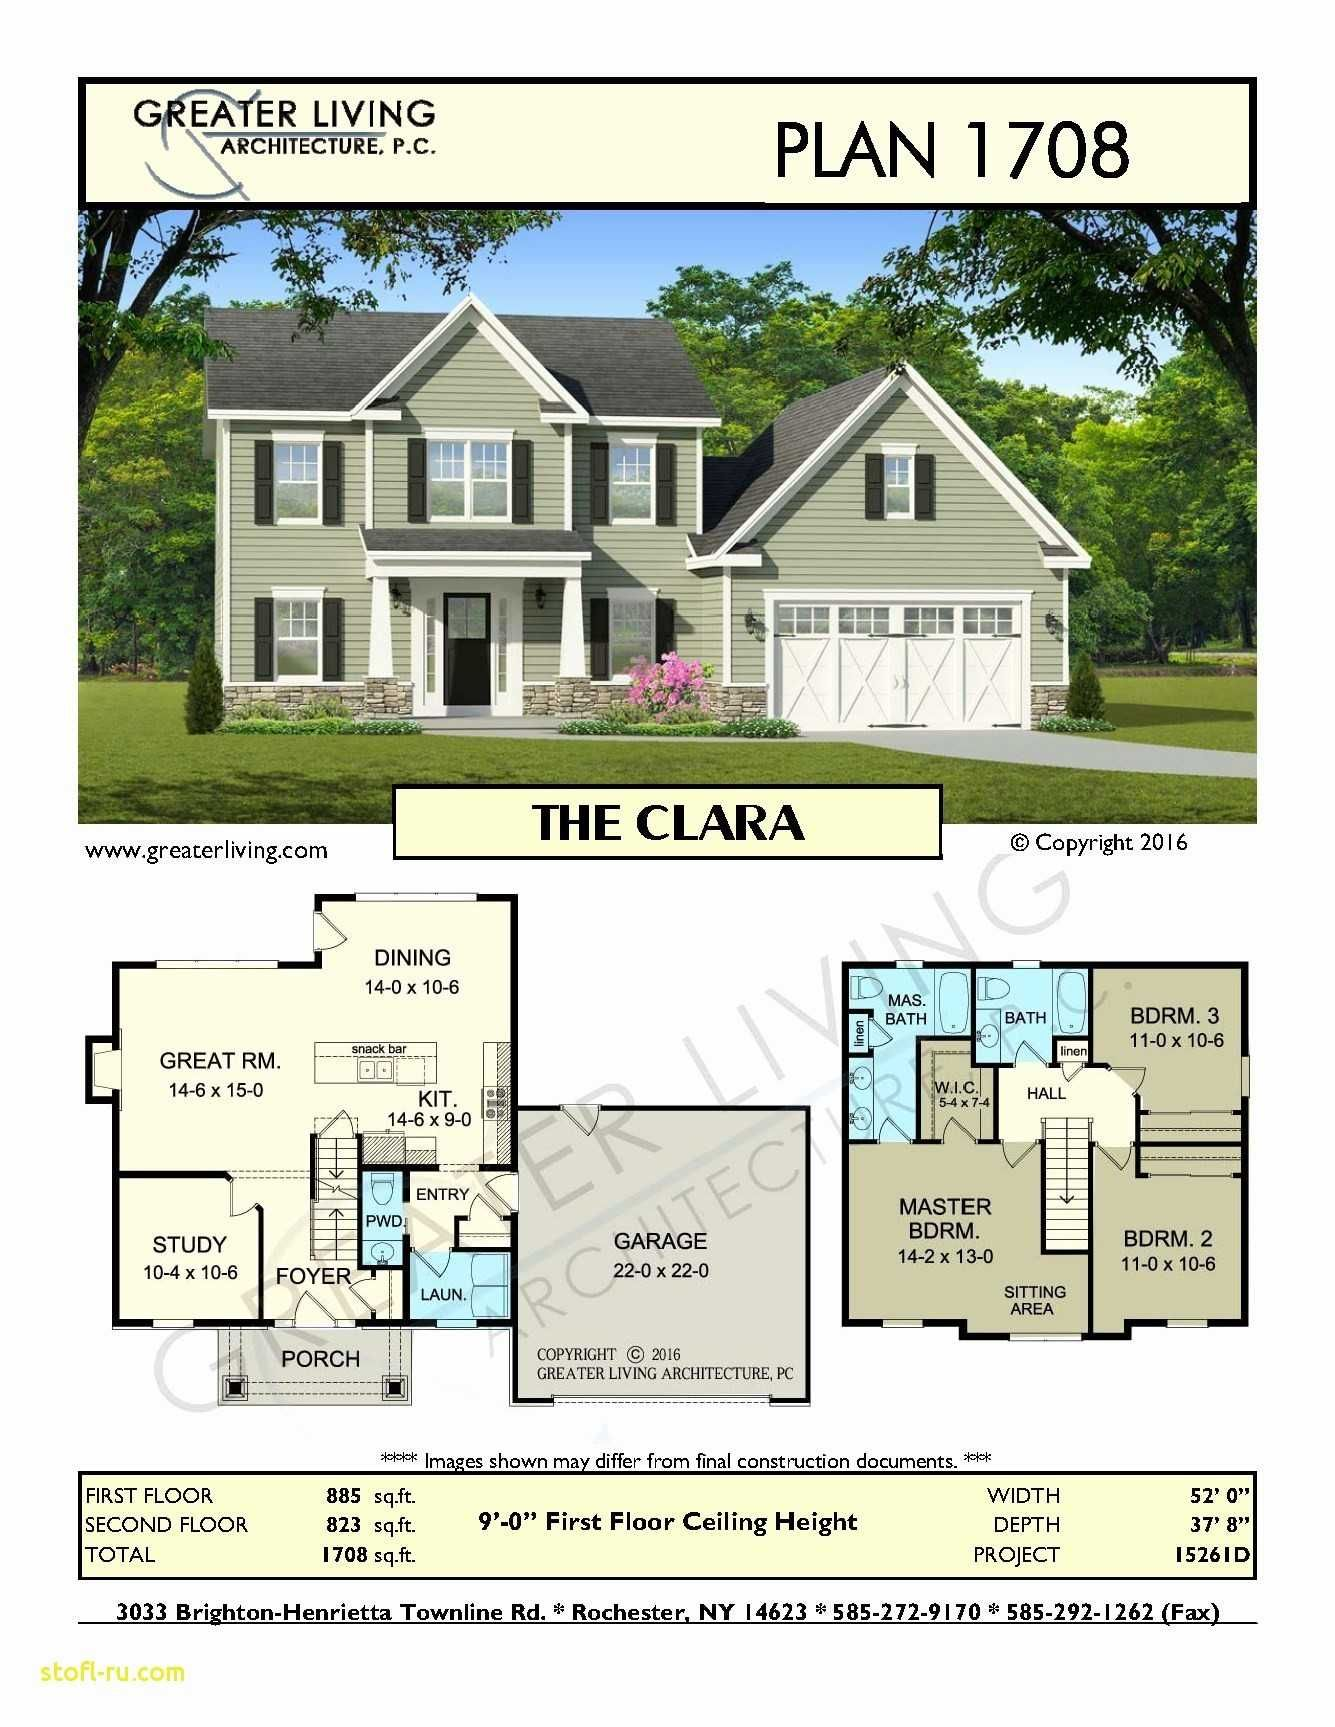 Small Farmhouse Plans With Photos Elegant Small Farmhouse Plans With Photos River House Plans Be Pool House Plans Two Story House Design Pool House Designs